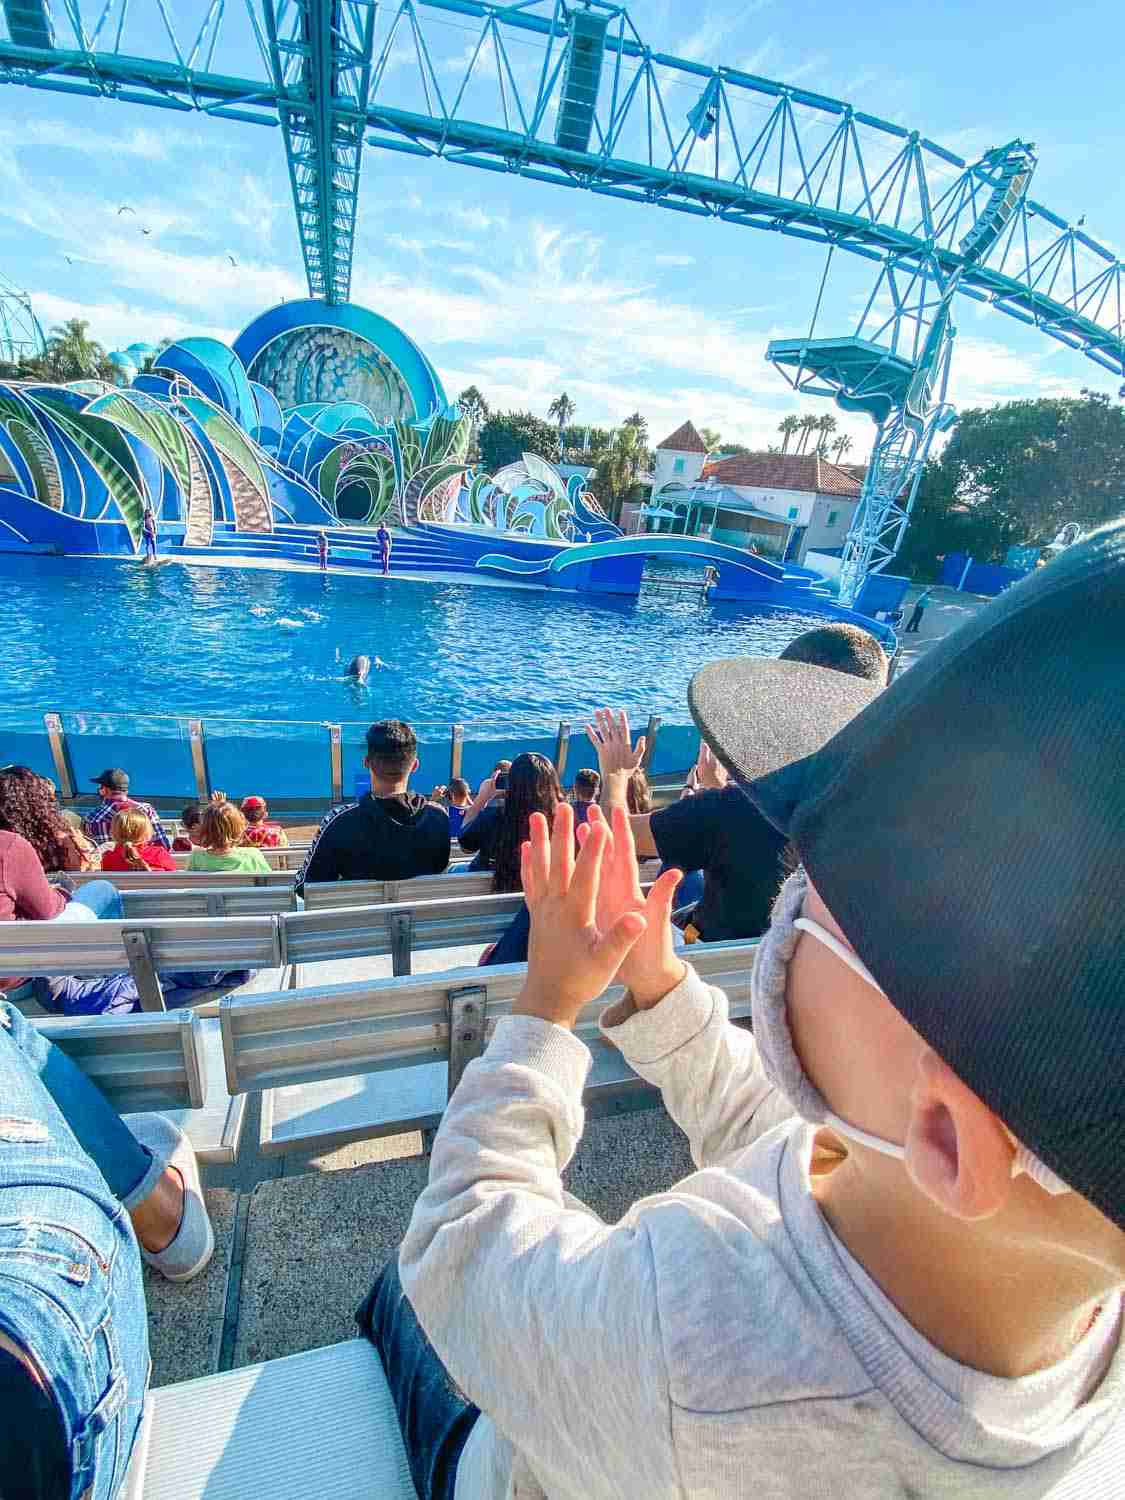 Boy clapping at dolphin show at seaworld